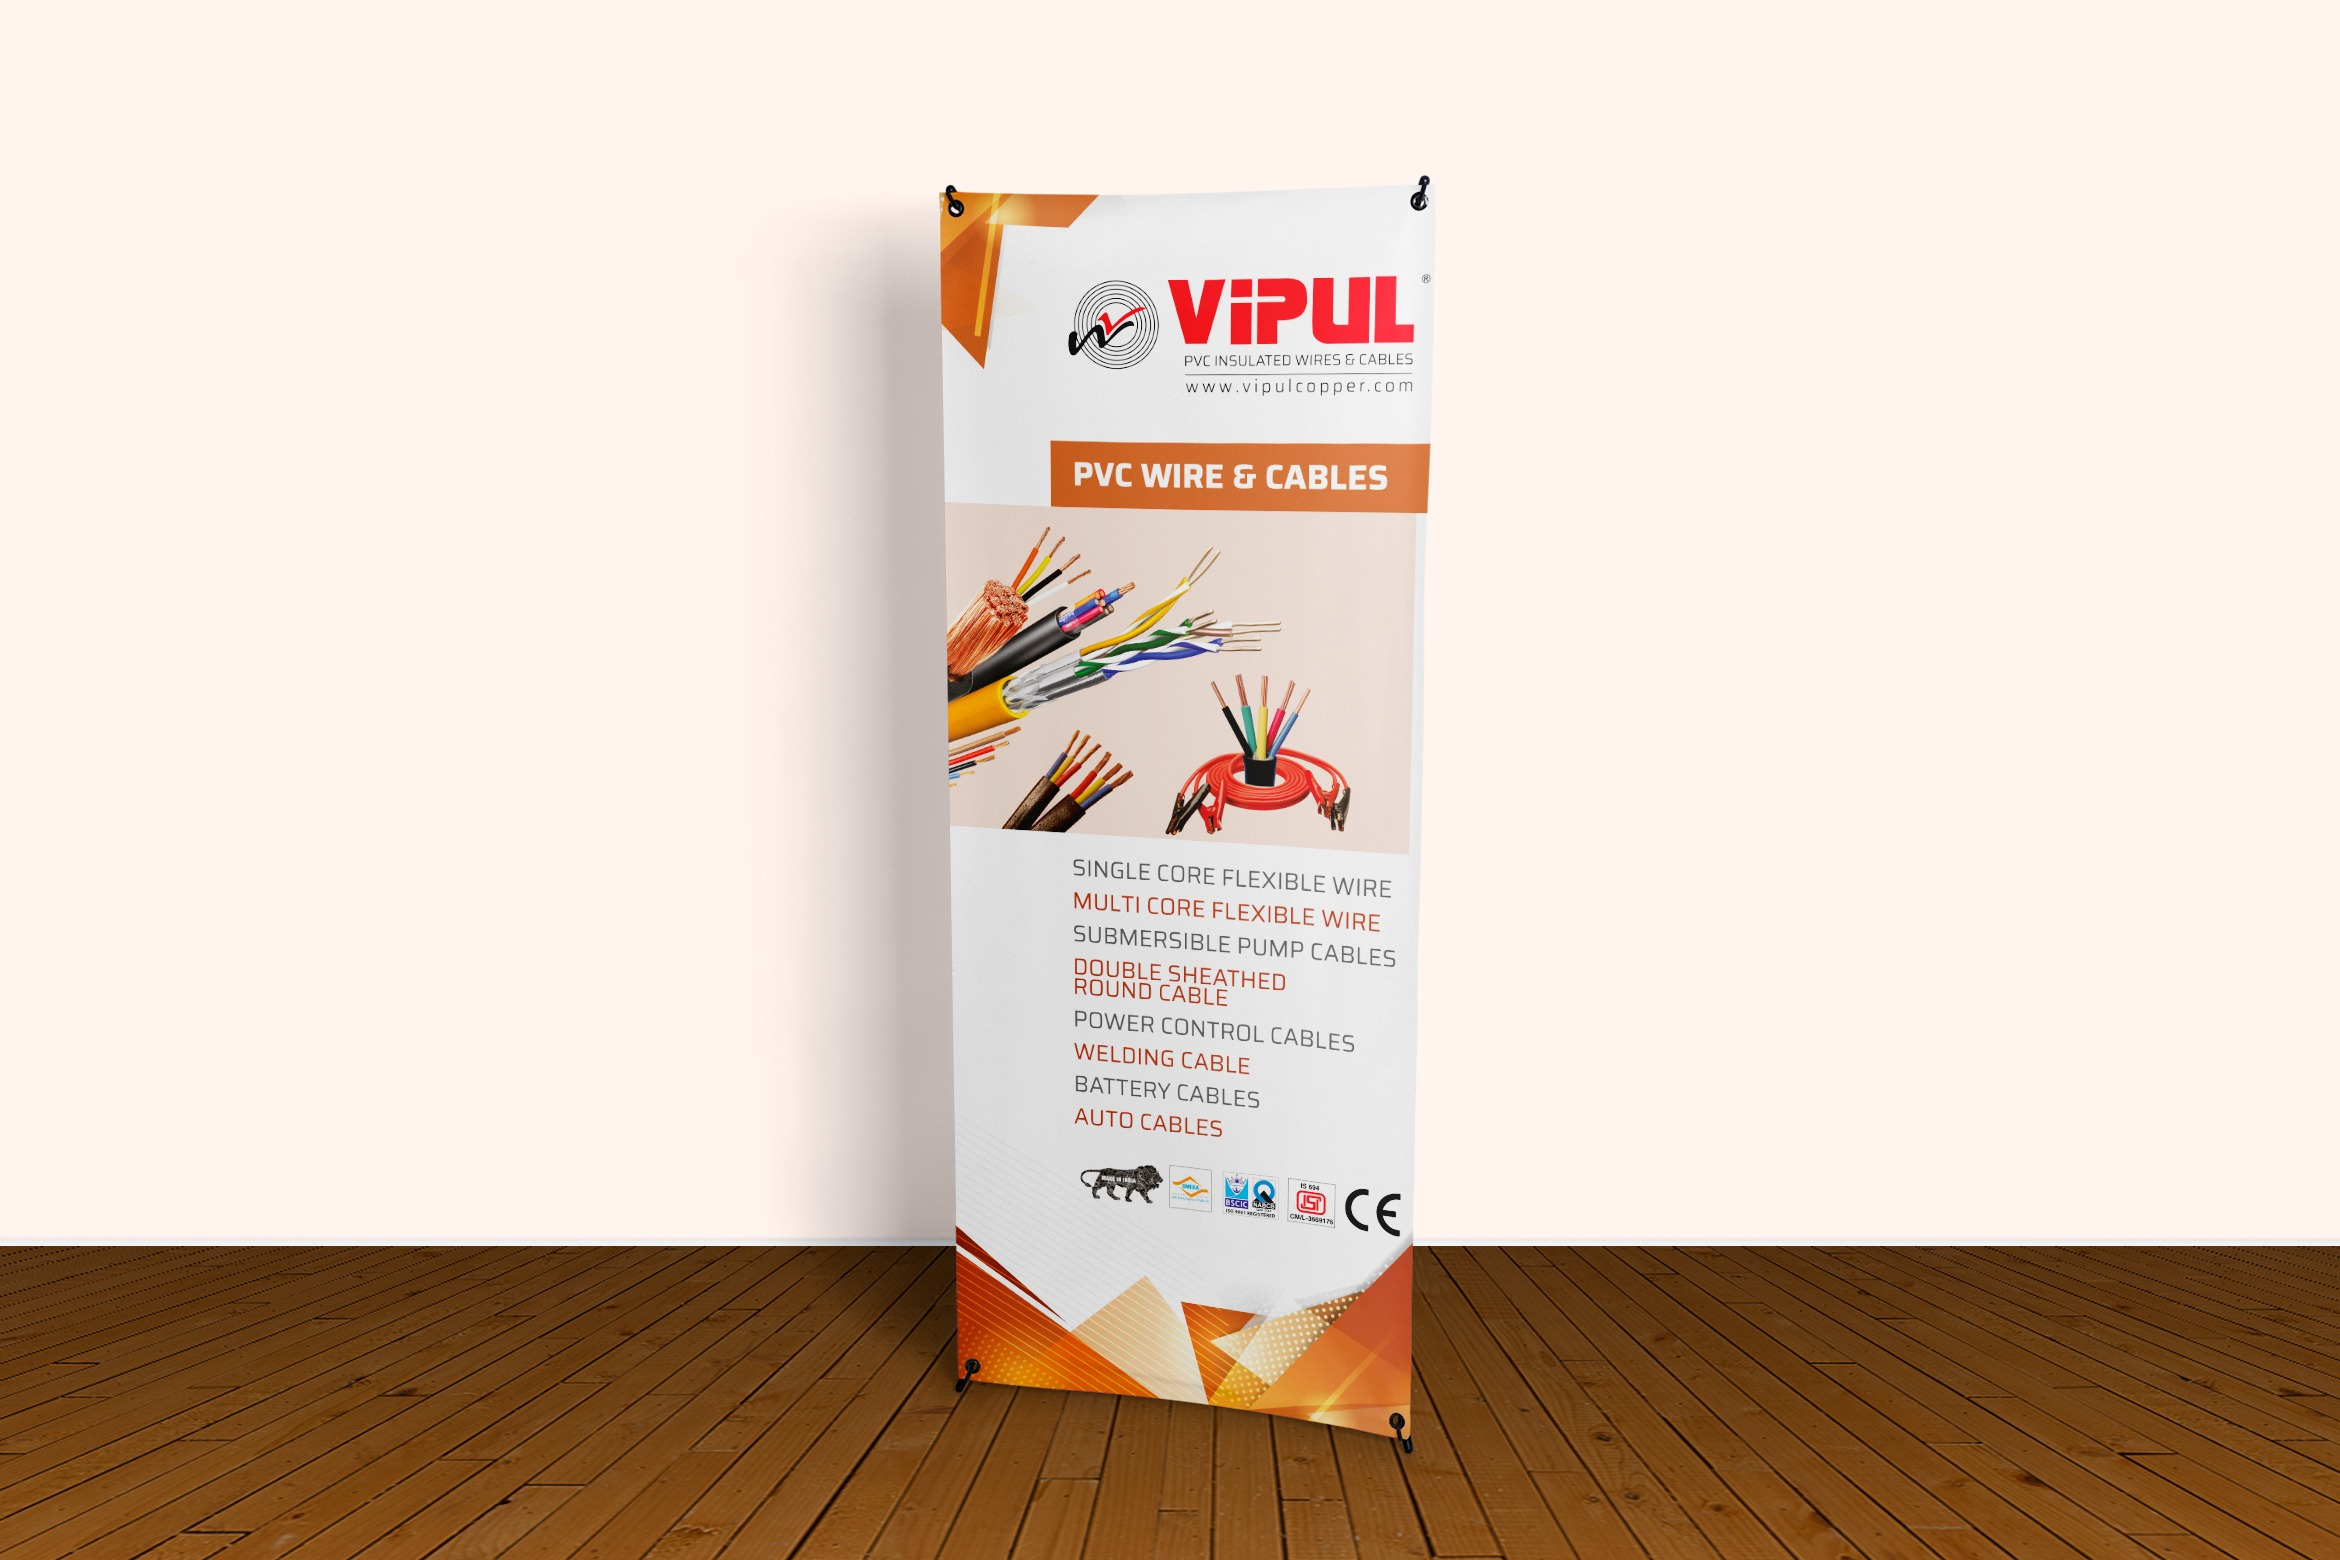 Vipul Copper Standee Design